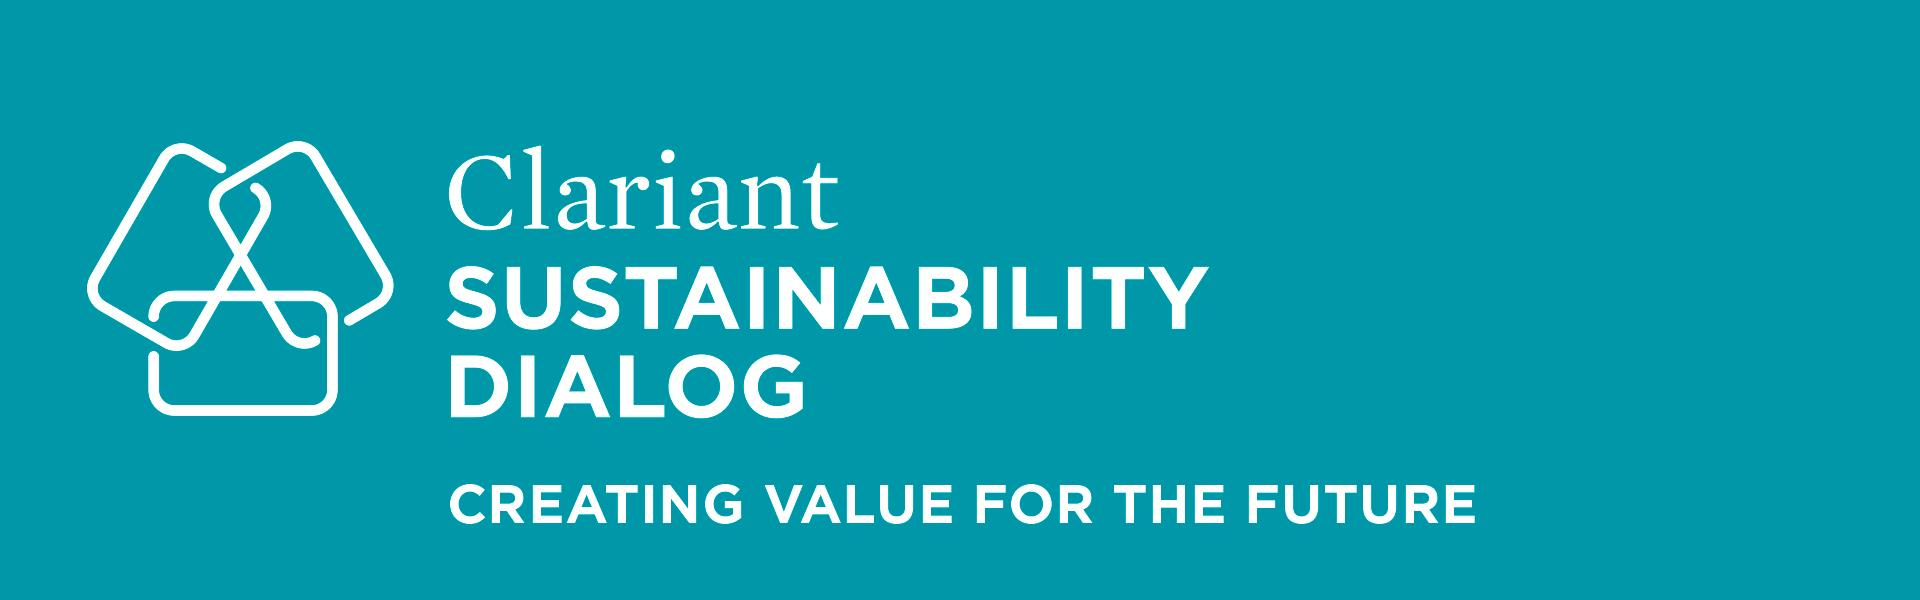 sustainability_dialog_2015_1920x600_mitText